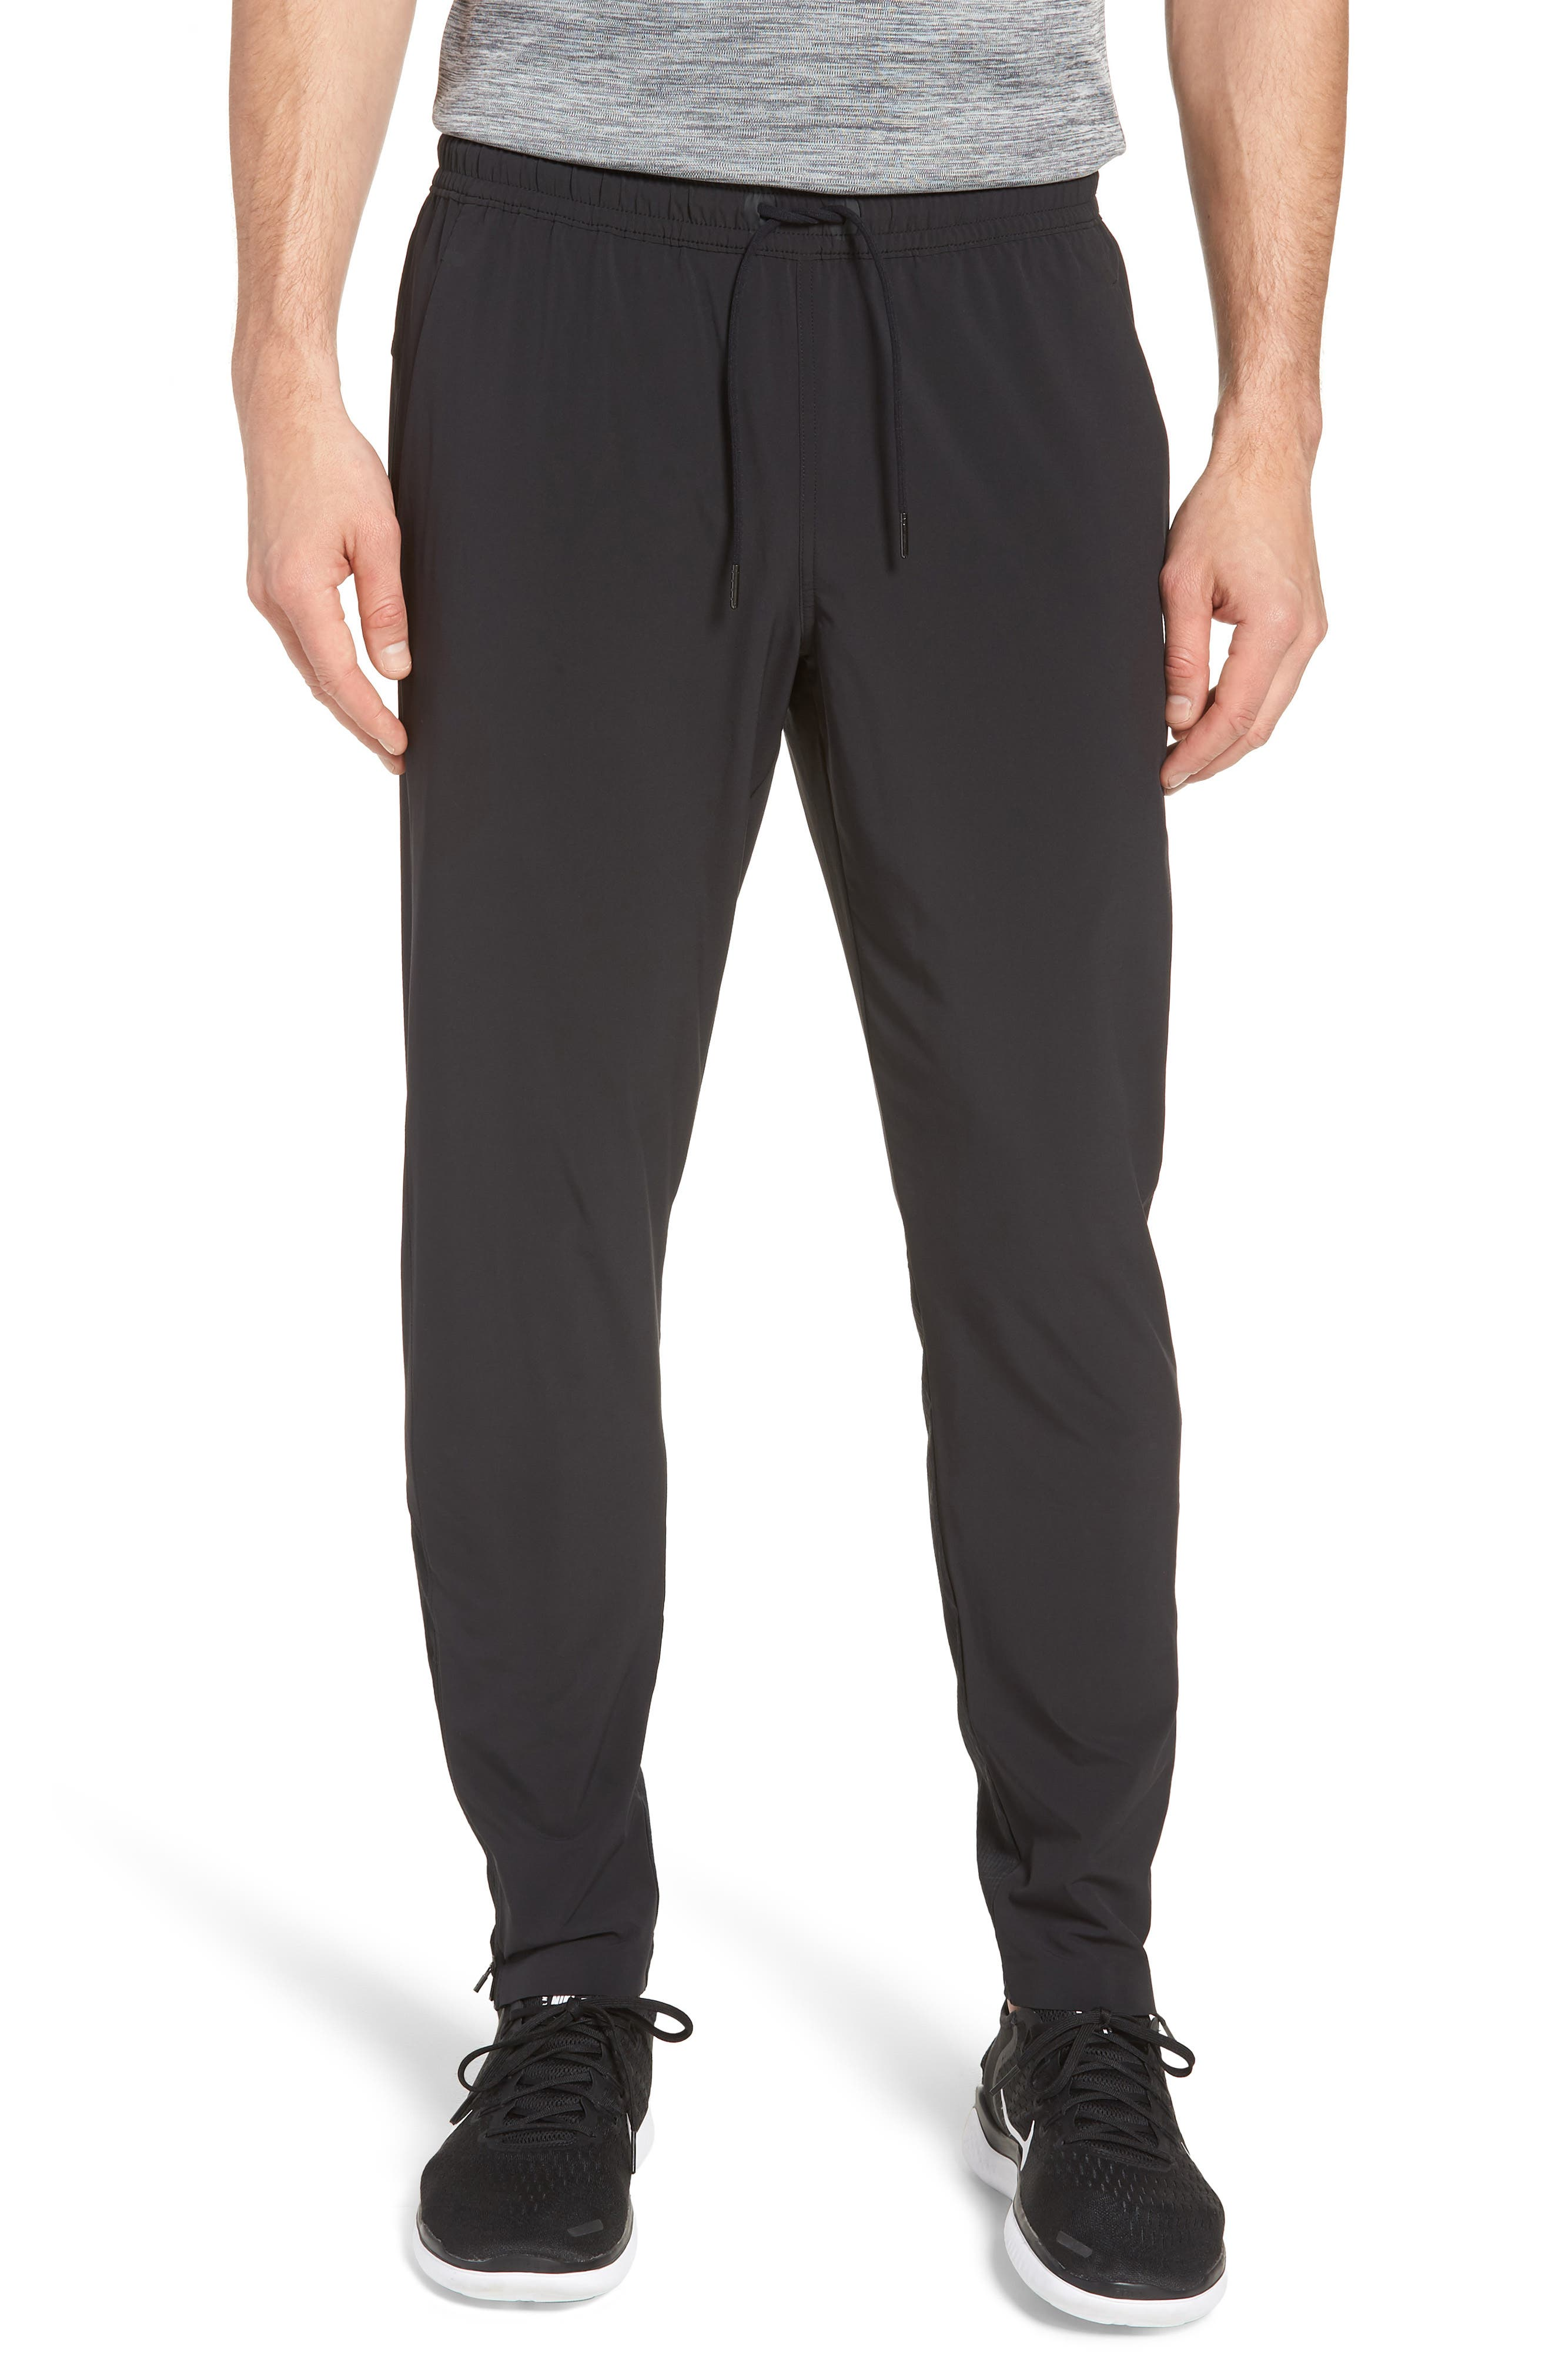 Graphite Tapered Athletic Pants, Main, color, BLACK